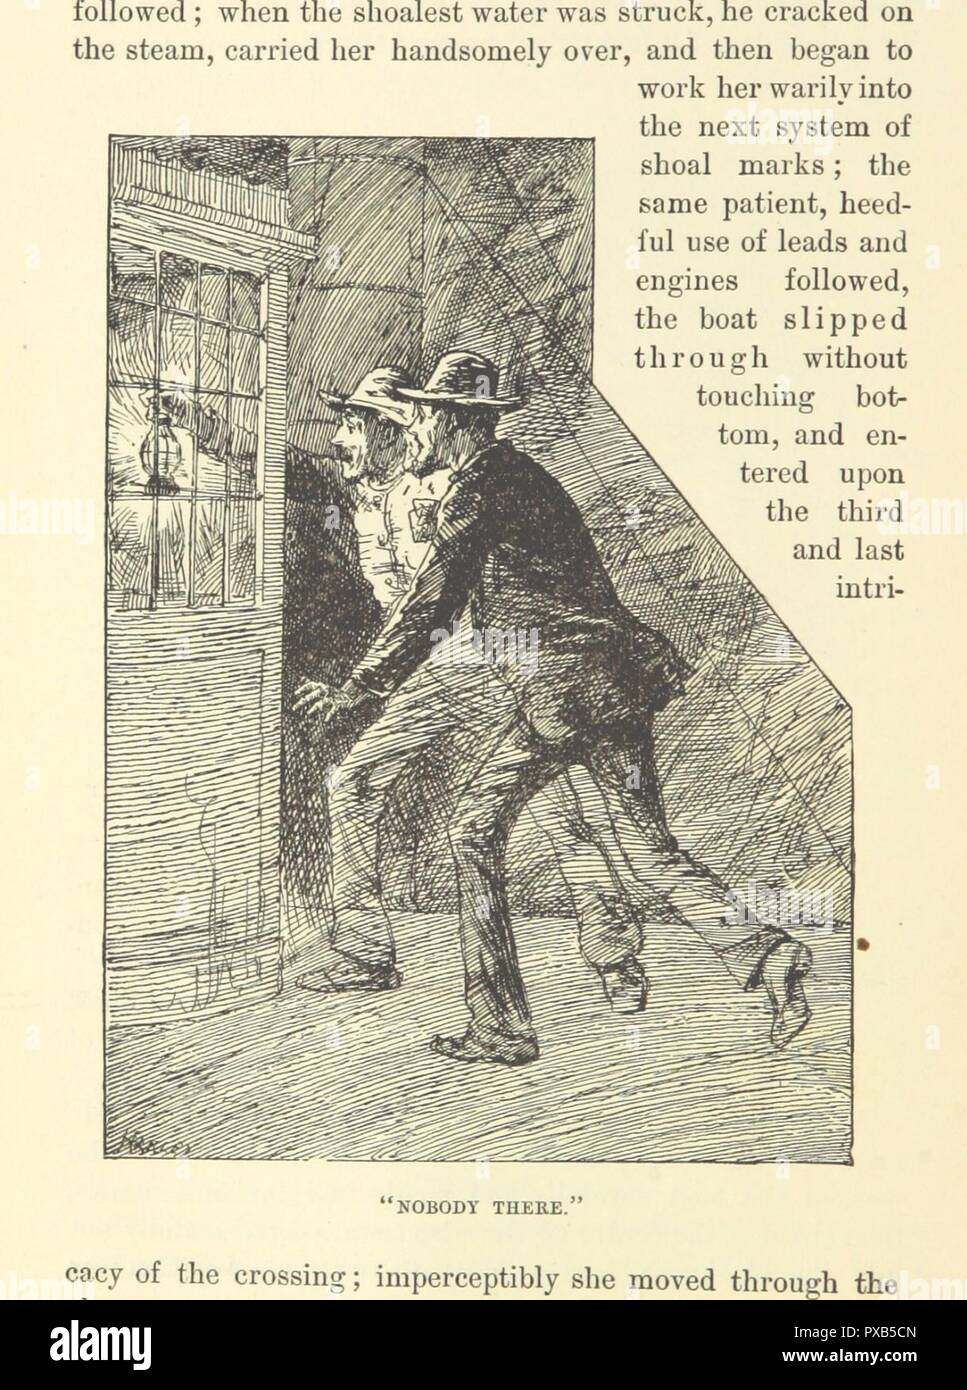 page 146 of 'Life on the Mississippi. By Mark Twain (Samuel L. Clemens) . With more than 300 illustrations, etc' . - Stock Image